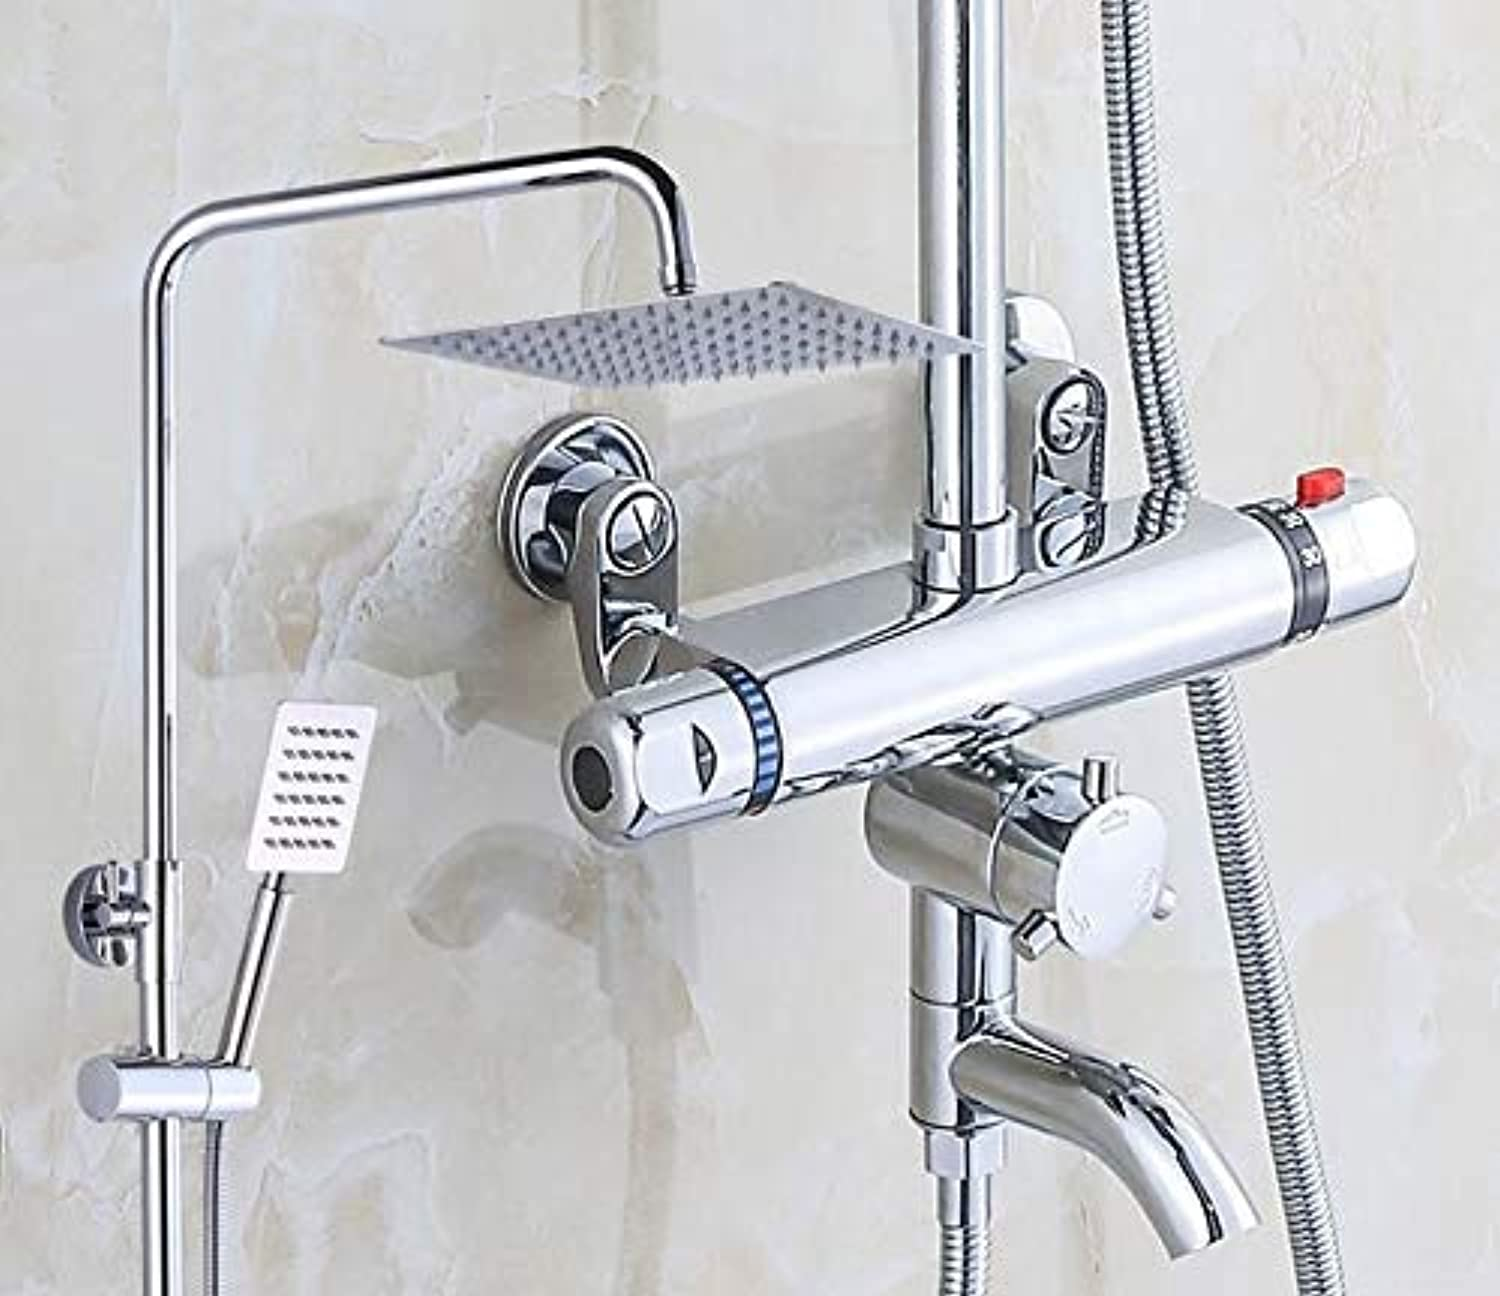 Bathroom Thermostatic Shower Faucet Shower Head Set,Wall Mount Shower Faucet Mixer,Brass Shower Faucet Thermostatic Mixing Valve